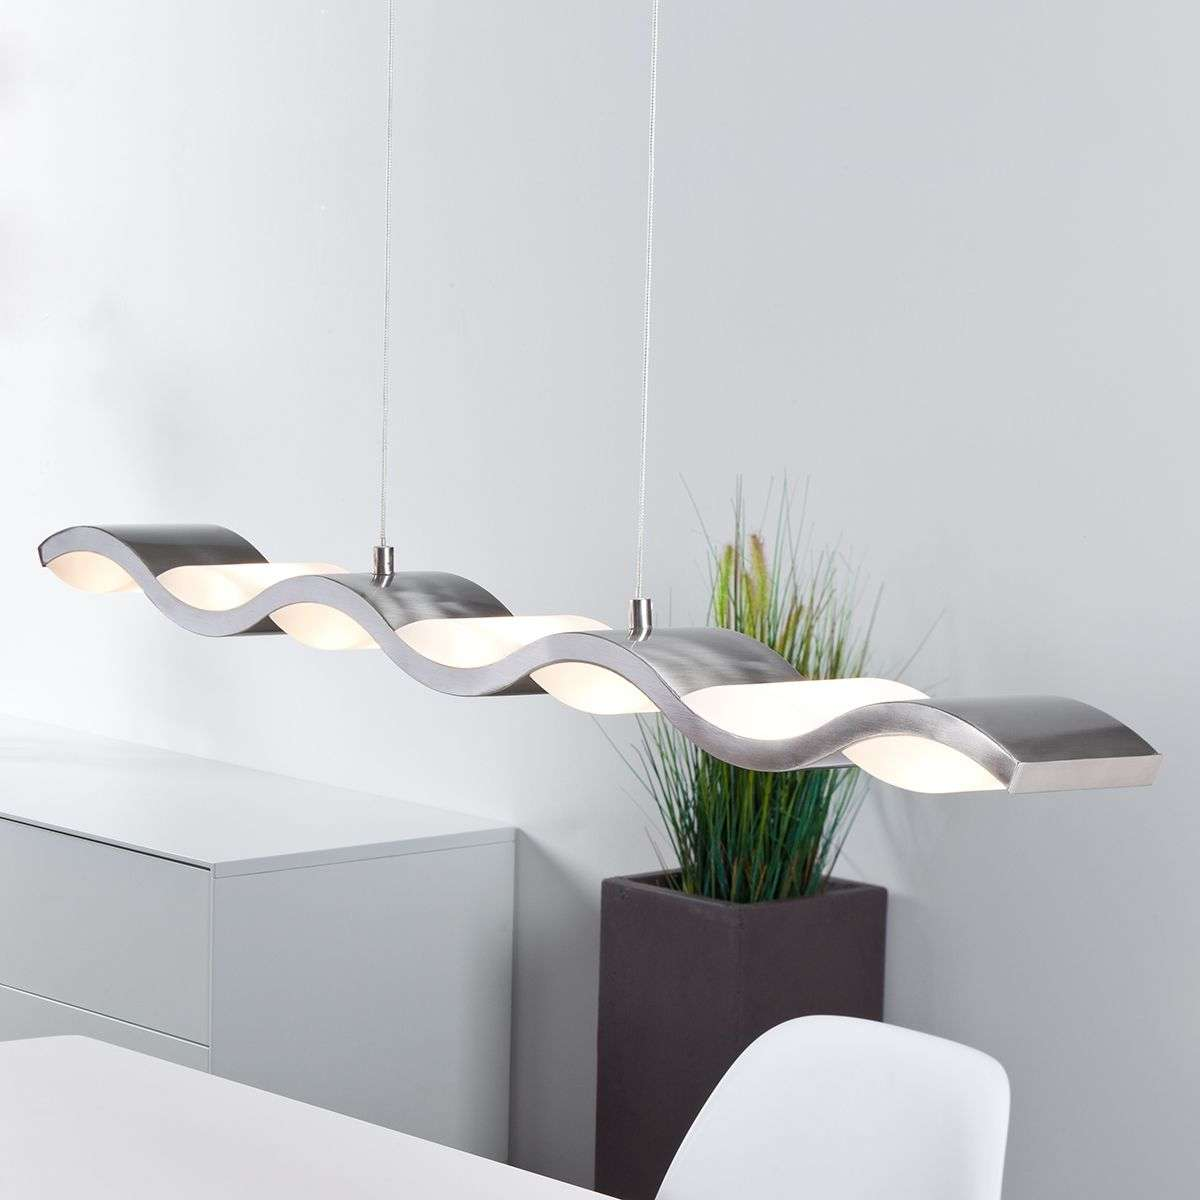 Liquid dimmable LED pendant lamp, wave form-1509025-31